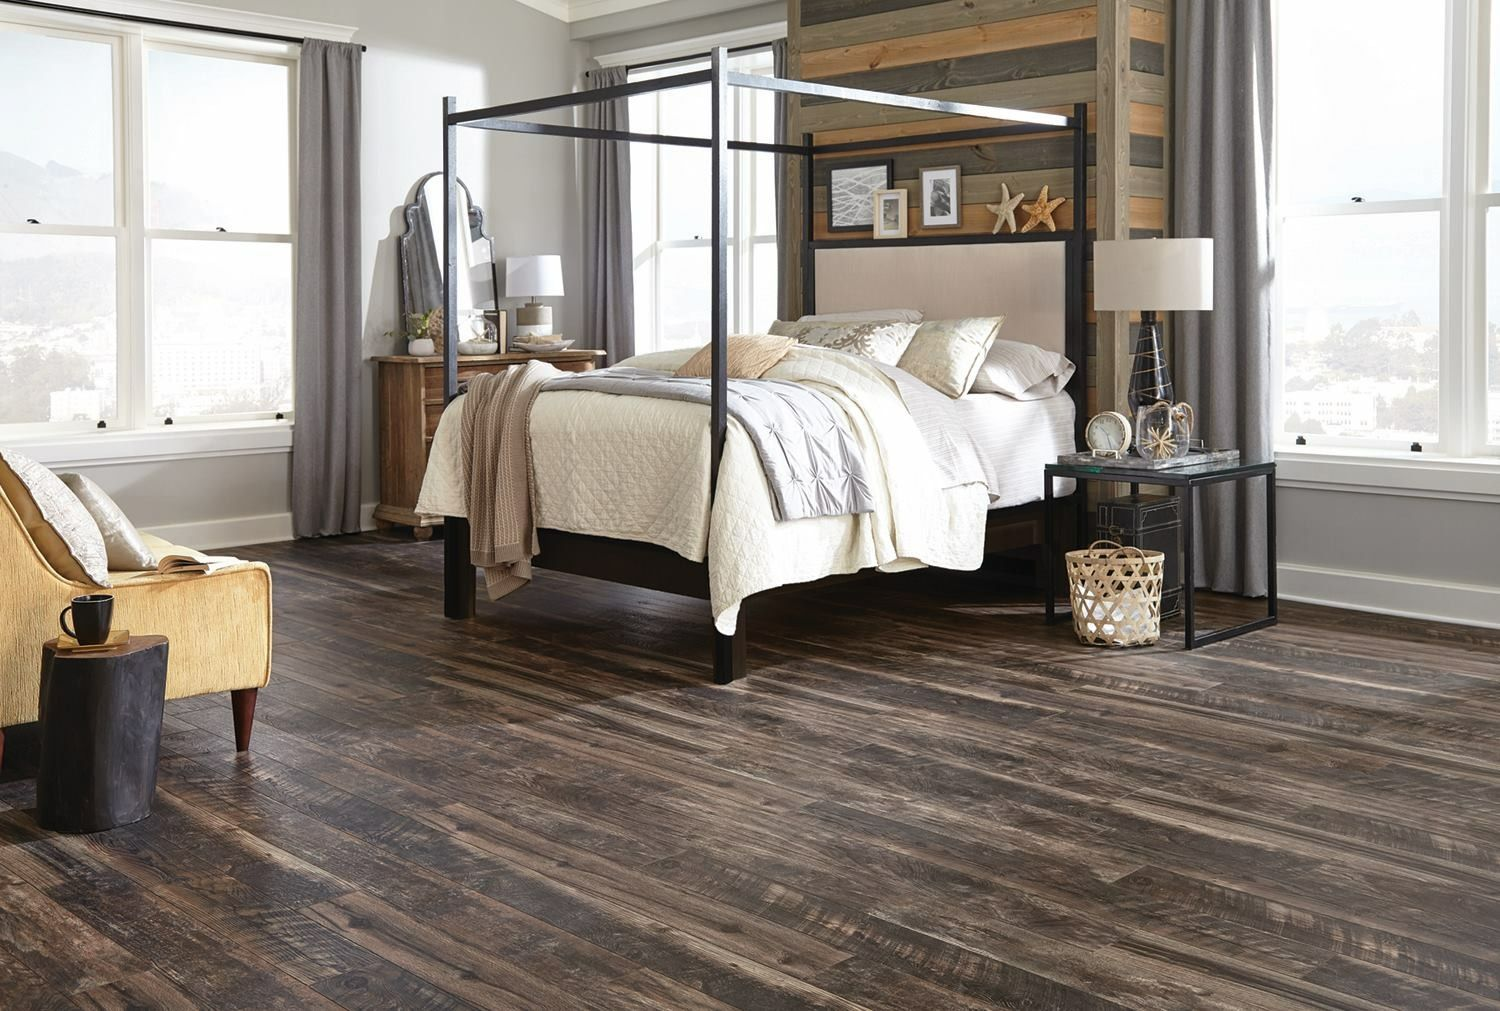 Pin by Annie Doxey on Interior design Flooring sale